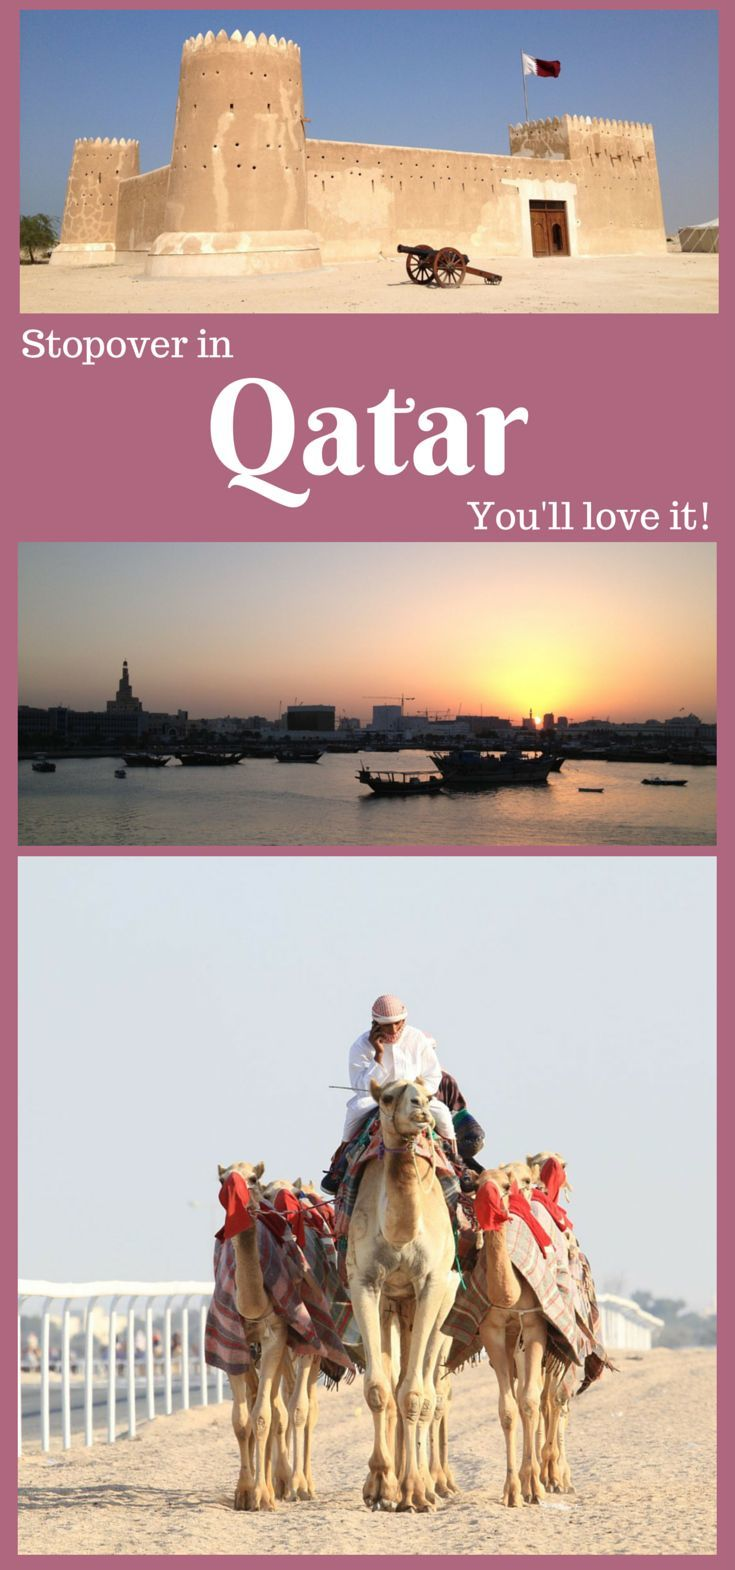 One day in Qatar Seeing All the Tourist Sights